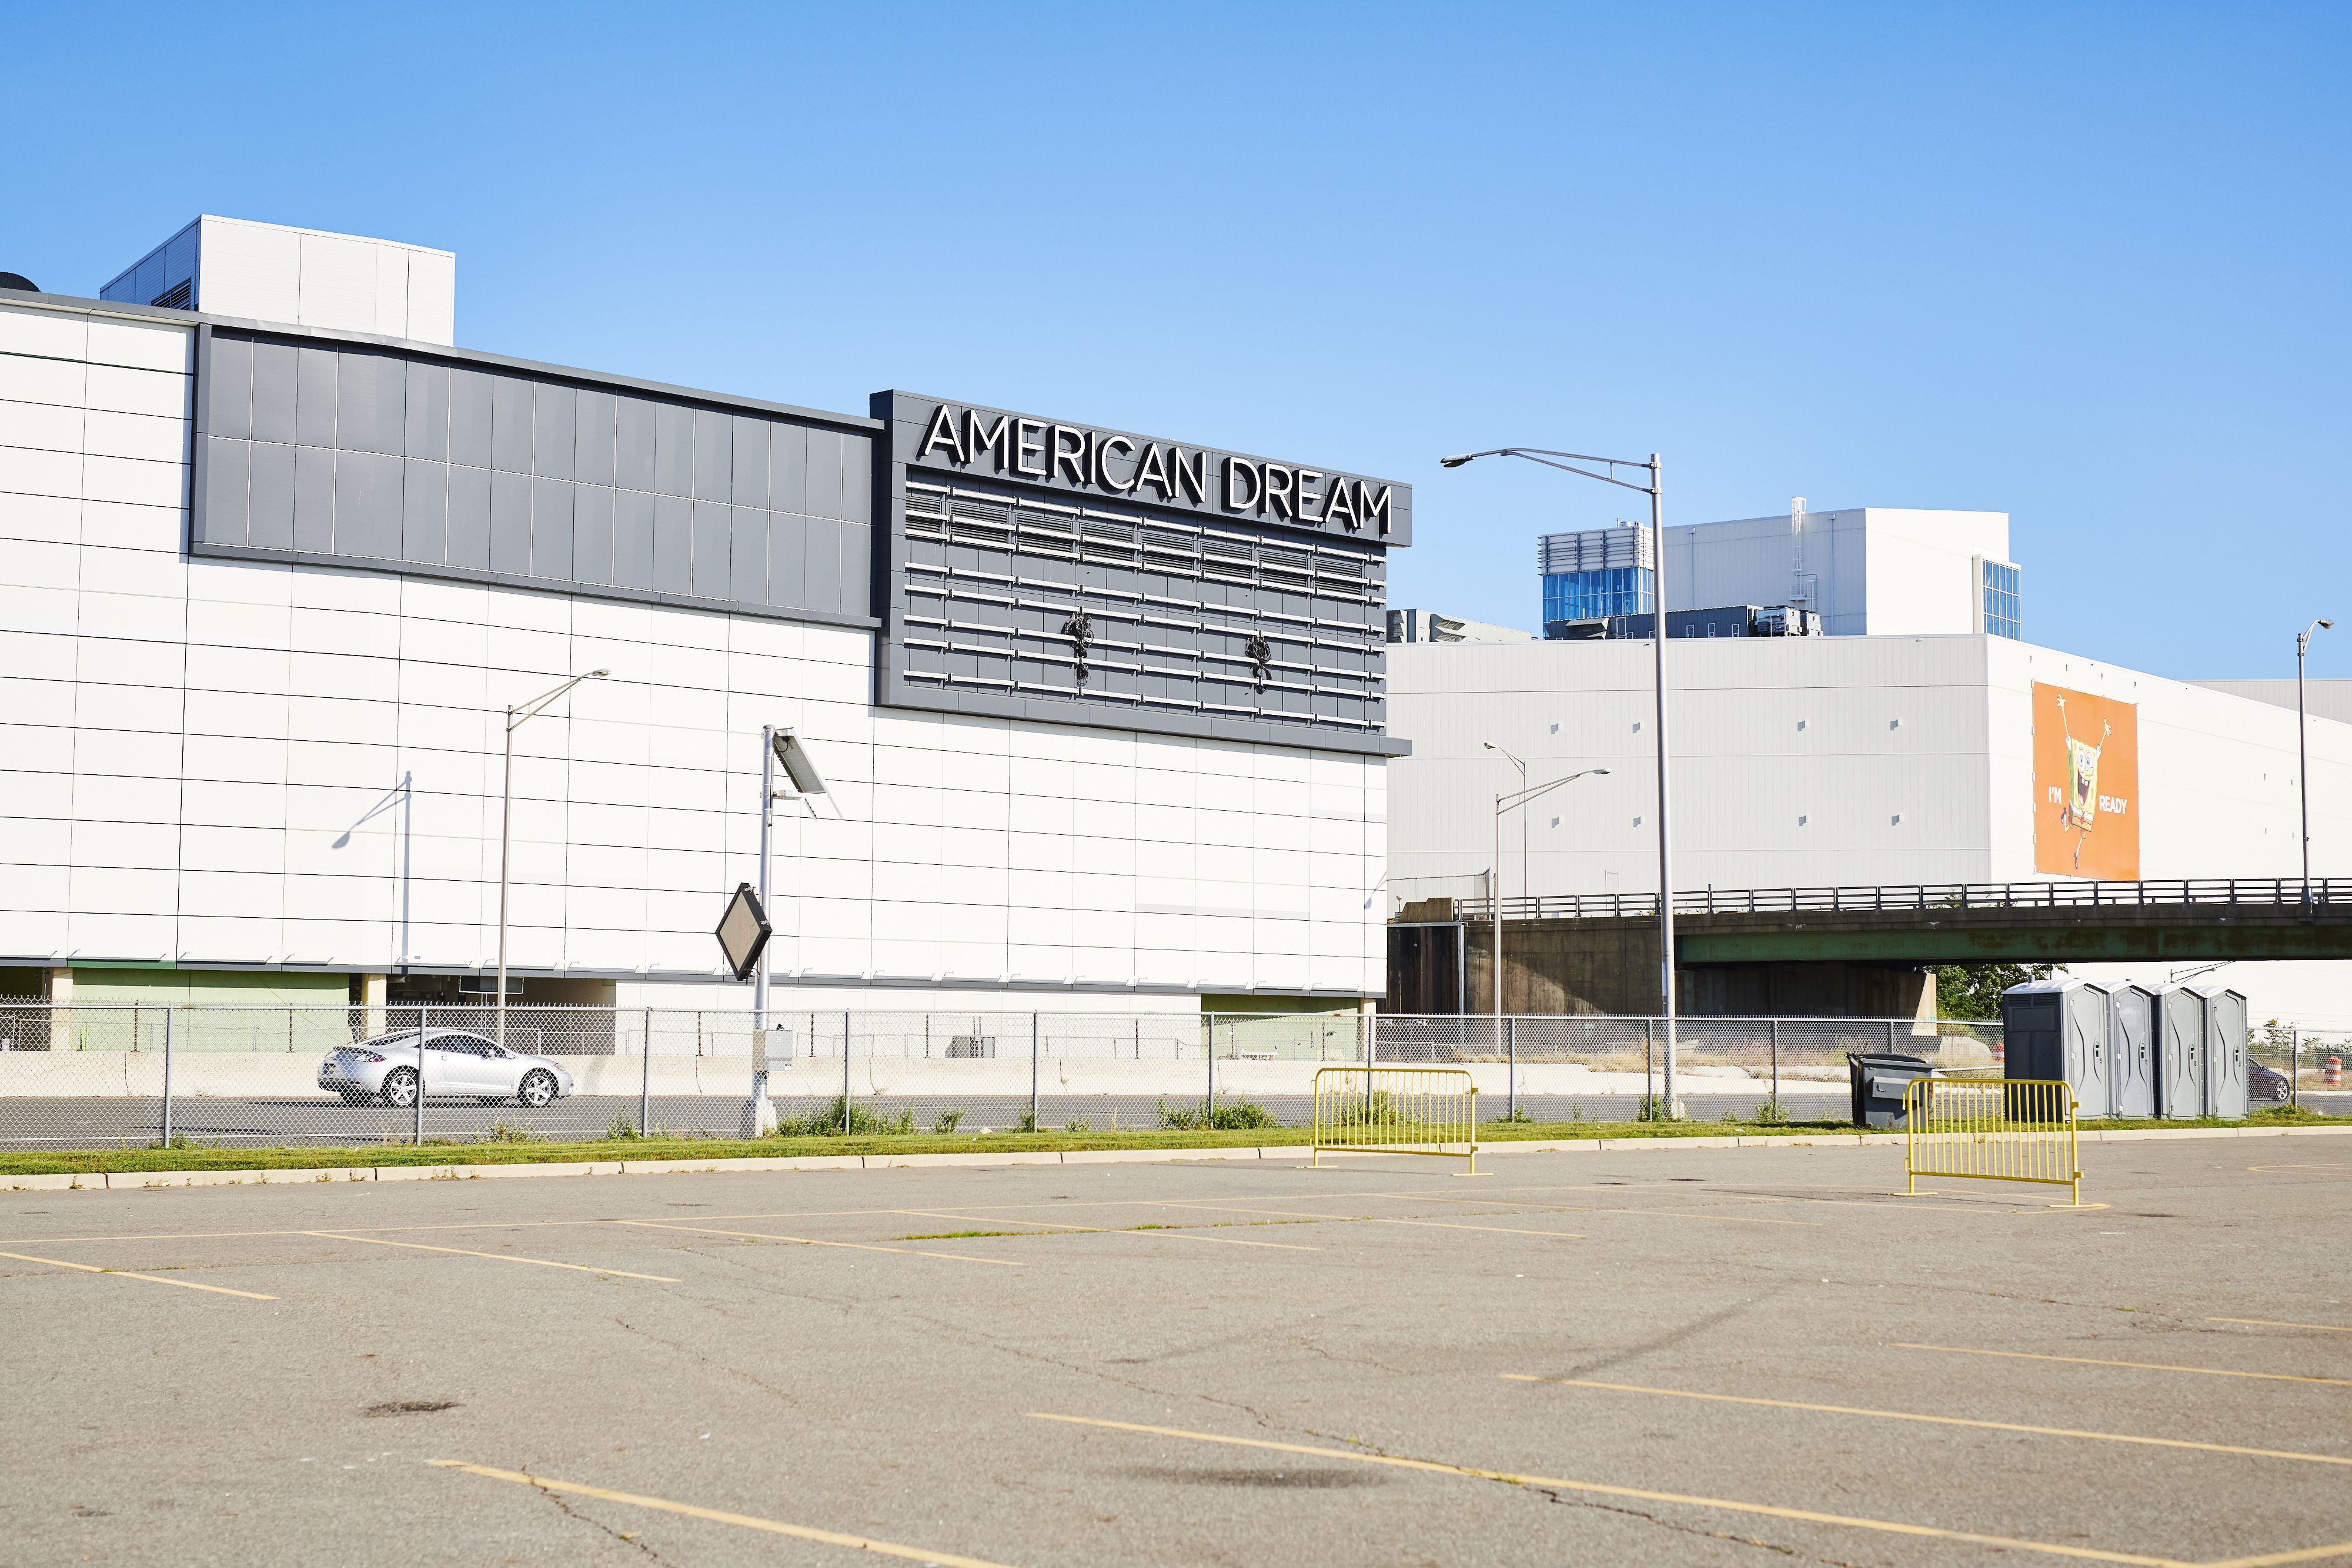 Long delayed American Dream mall reportedly doesn't have permit needed for opening